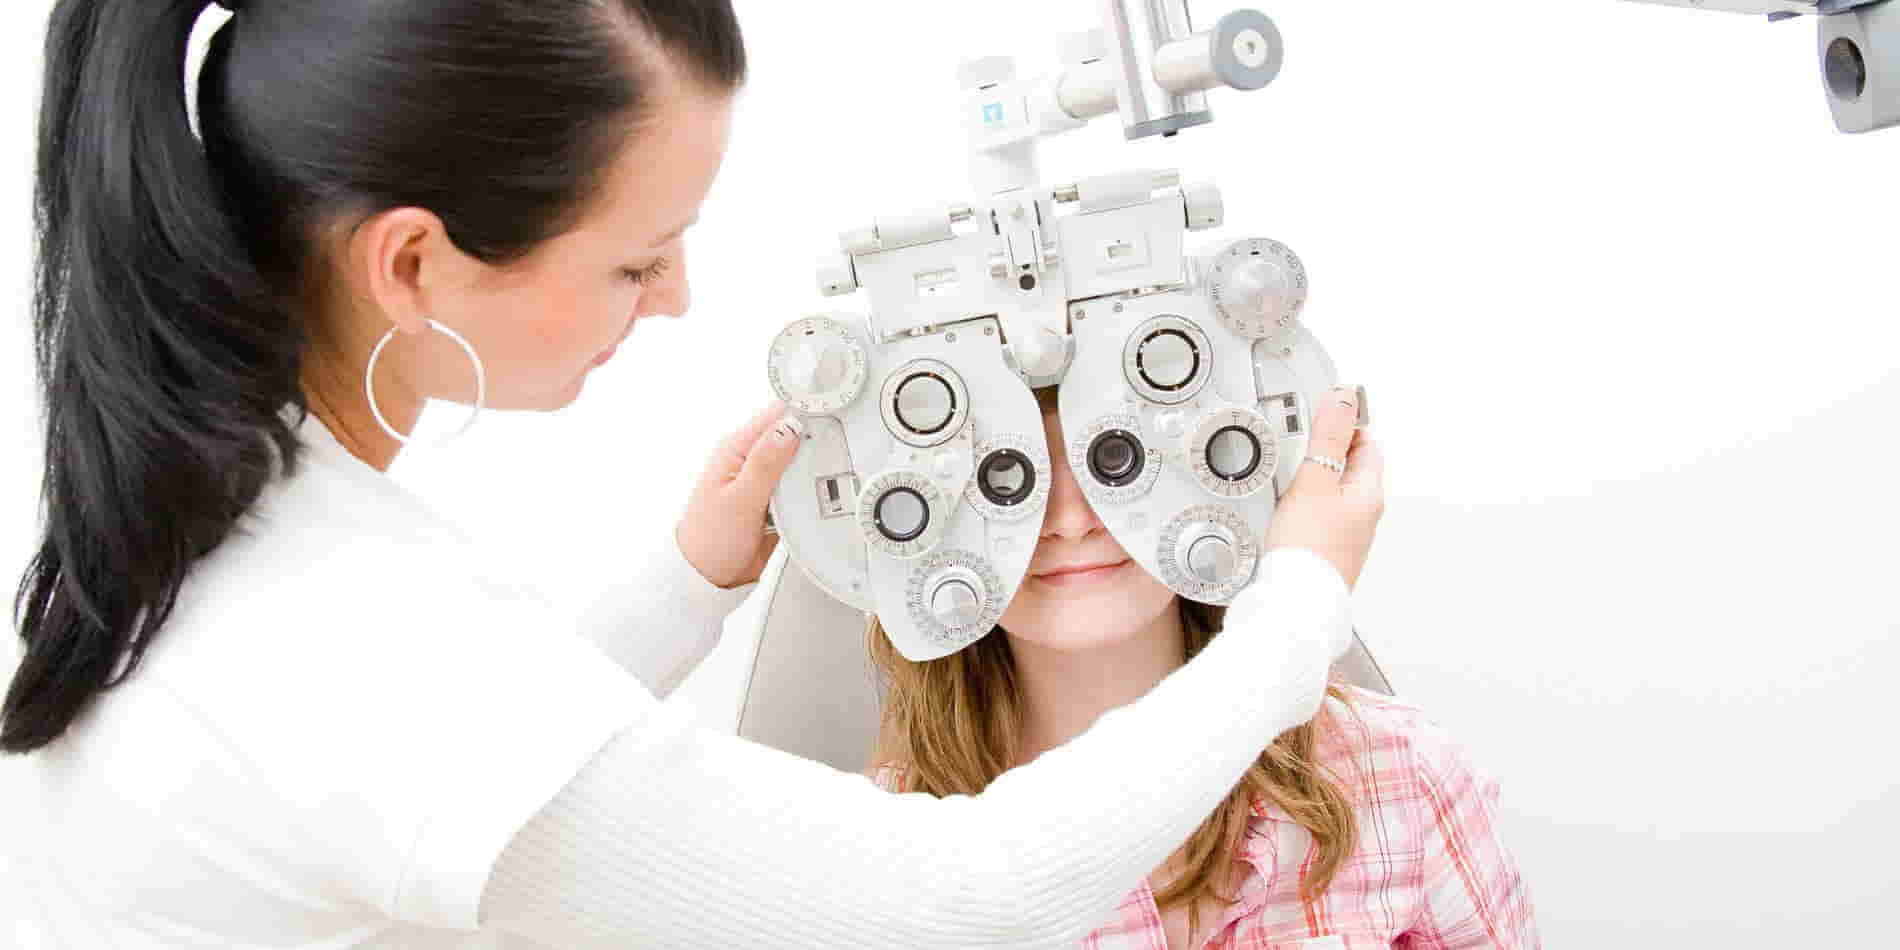 Best Ophthalmologist in Ahmedabad, Eye Surgeon in Ahmedabad, Glaucoma Specialist in Ahmedabad, Top 10 Eye Specialist in Ahmedabad, Lasik Surgery Cost in Ahmedabad, Lasik Surgery in Ahmedabad, Best Retina Specialist in Ahmedabad, best child eye doctor in Gujarat, best child eye doctor near me